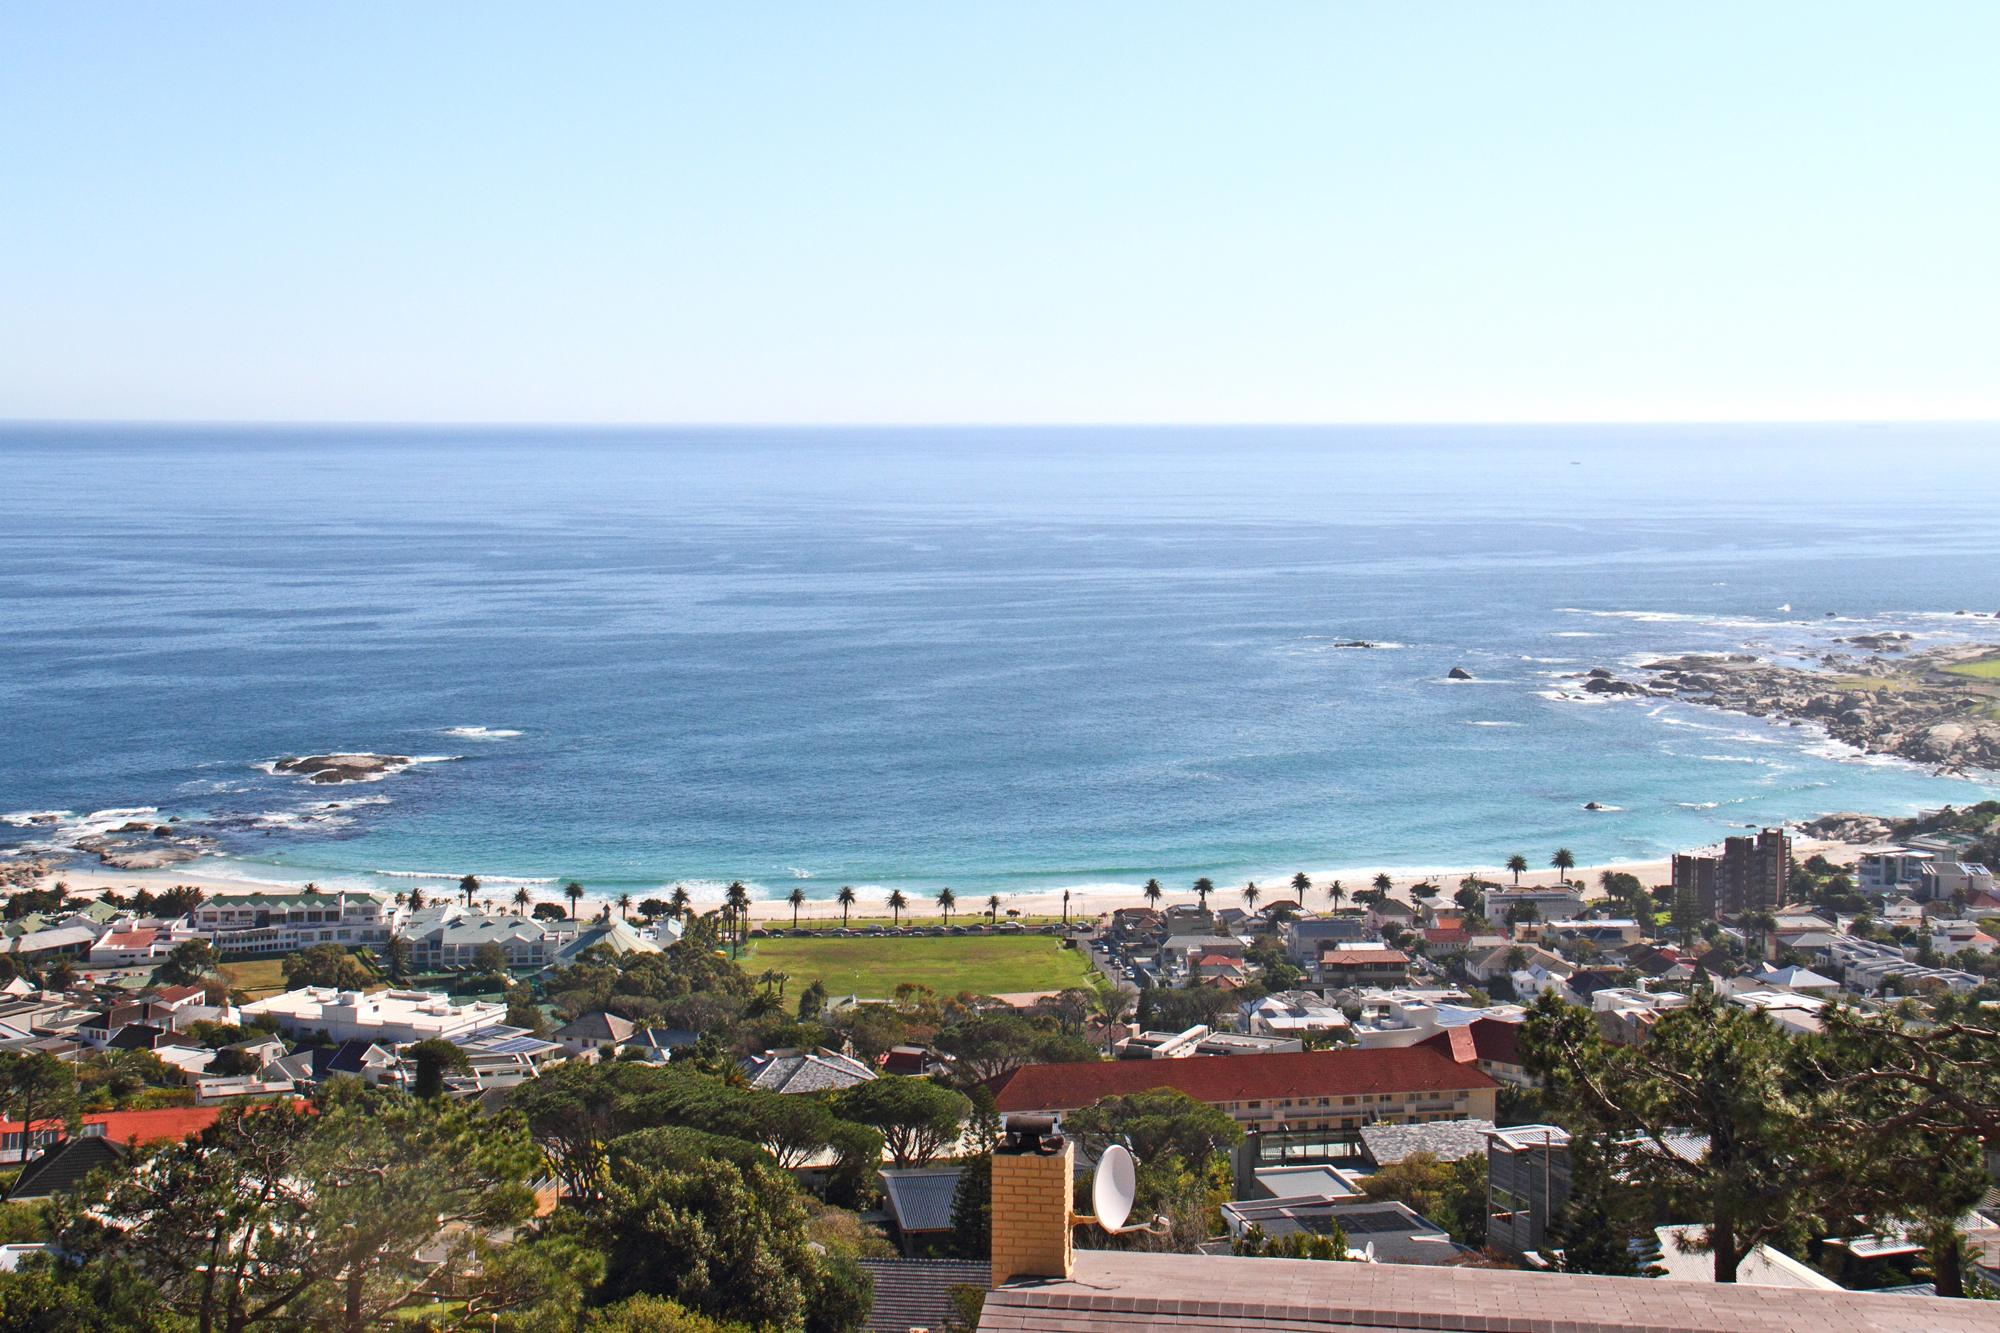 Sunset Hills in Camps Bay, Cape Town, South Africa